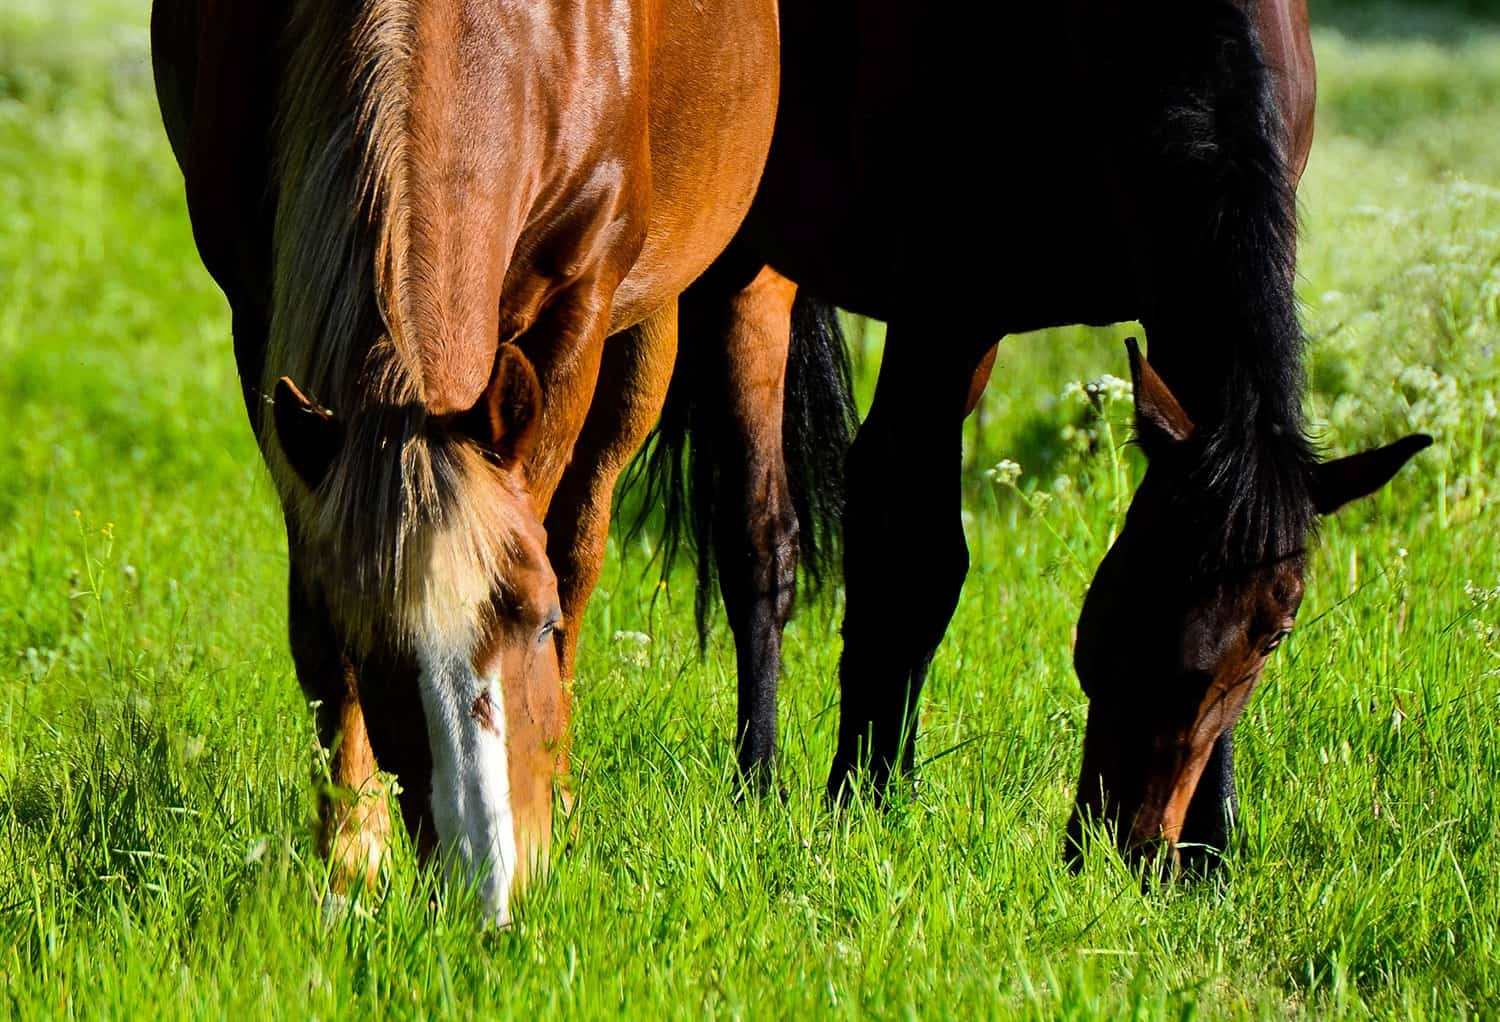 horse care Horse care - water and feed supplement dr jarvis, the vermont country doctor who popularized the use of apple cider vinegar in his book folk medicine, found that a horse would chew the wood of his stall because the wood contained potassium.